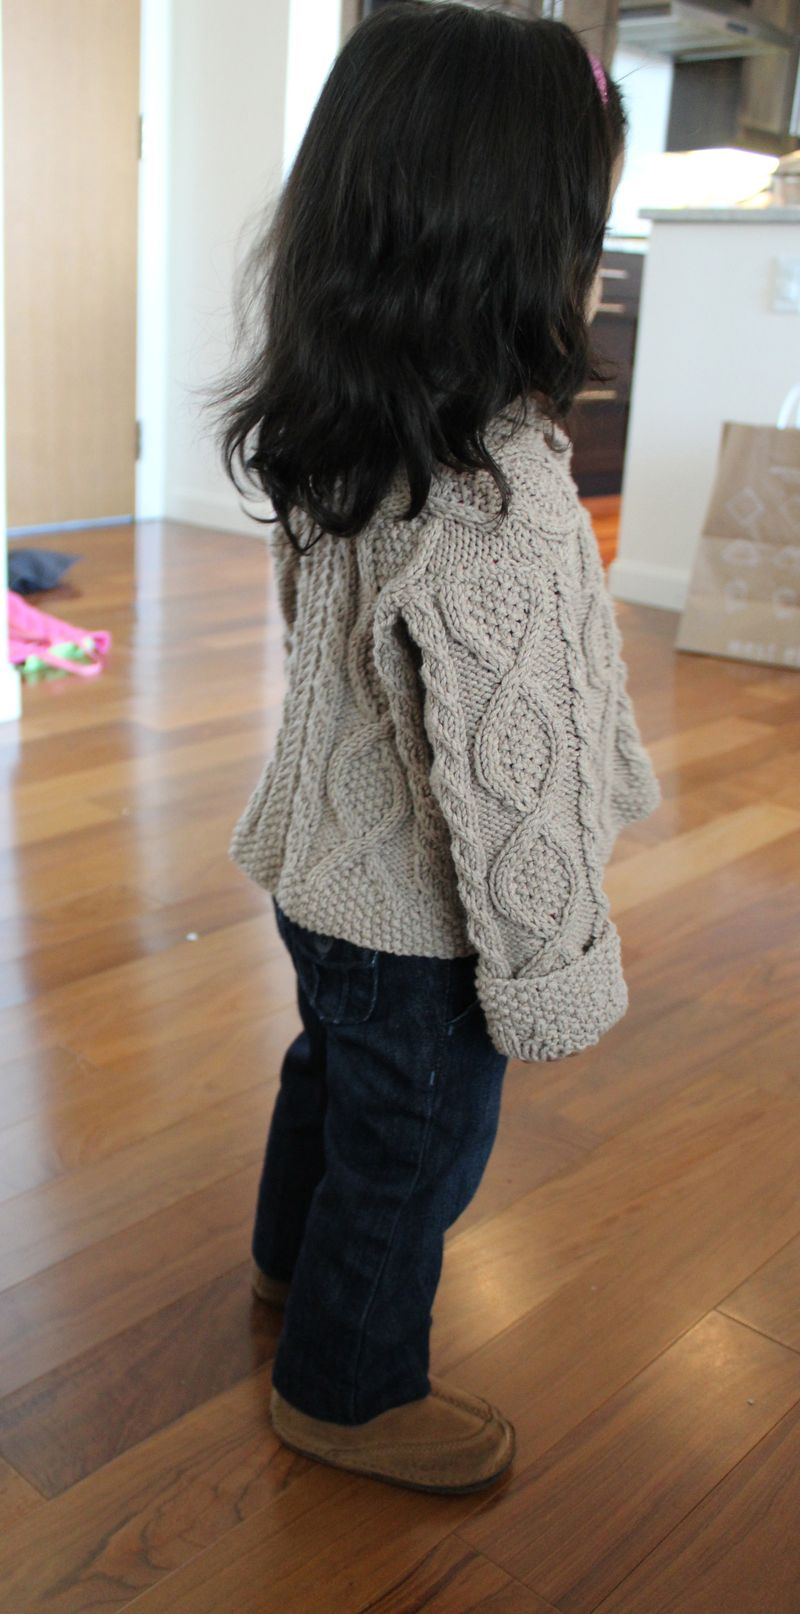 Shawl Cardigan | The Crafting Foodie